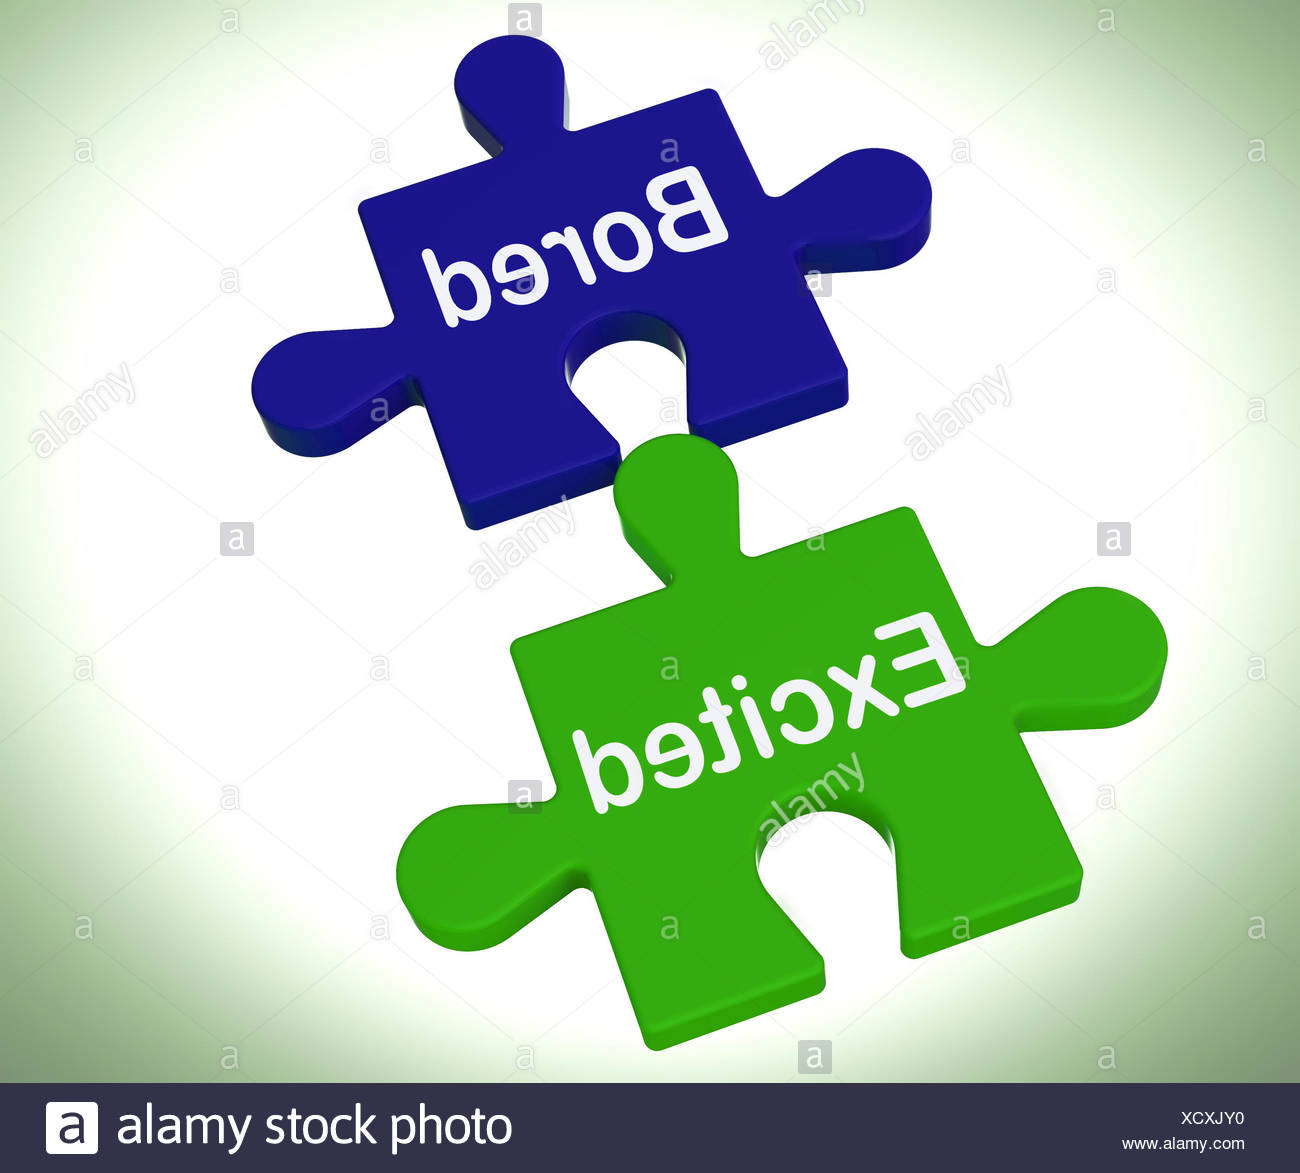 Bored Excited Puzzle Means Exciting And Fun Or  Boring Stock Photo